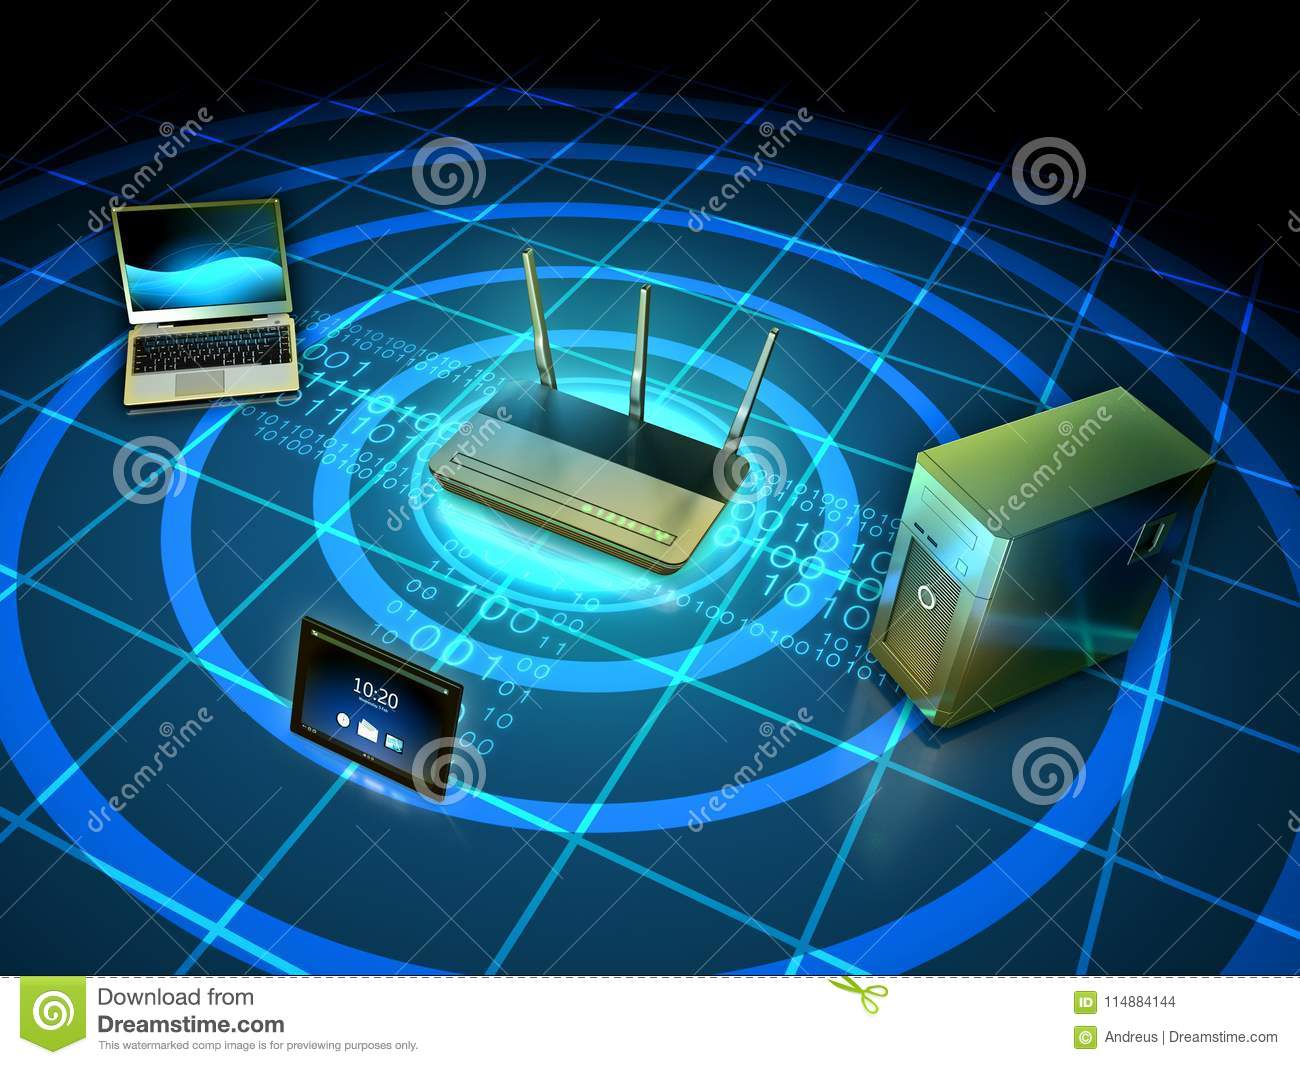 Wireless network setup stock illustration. Illustration of broadband ...